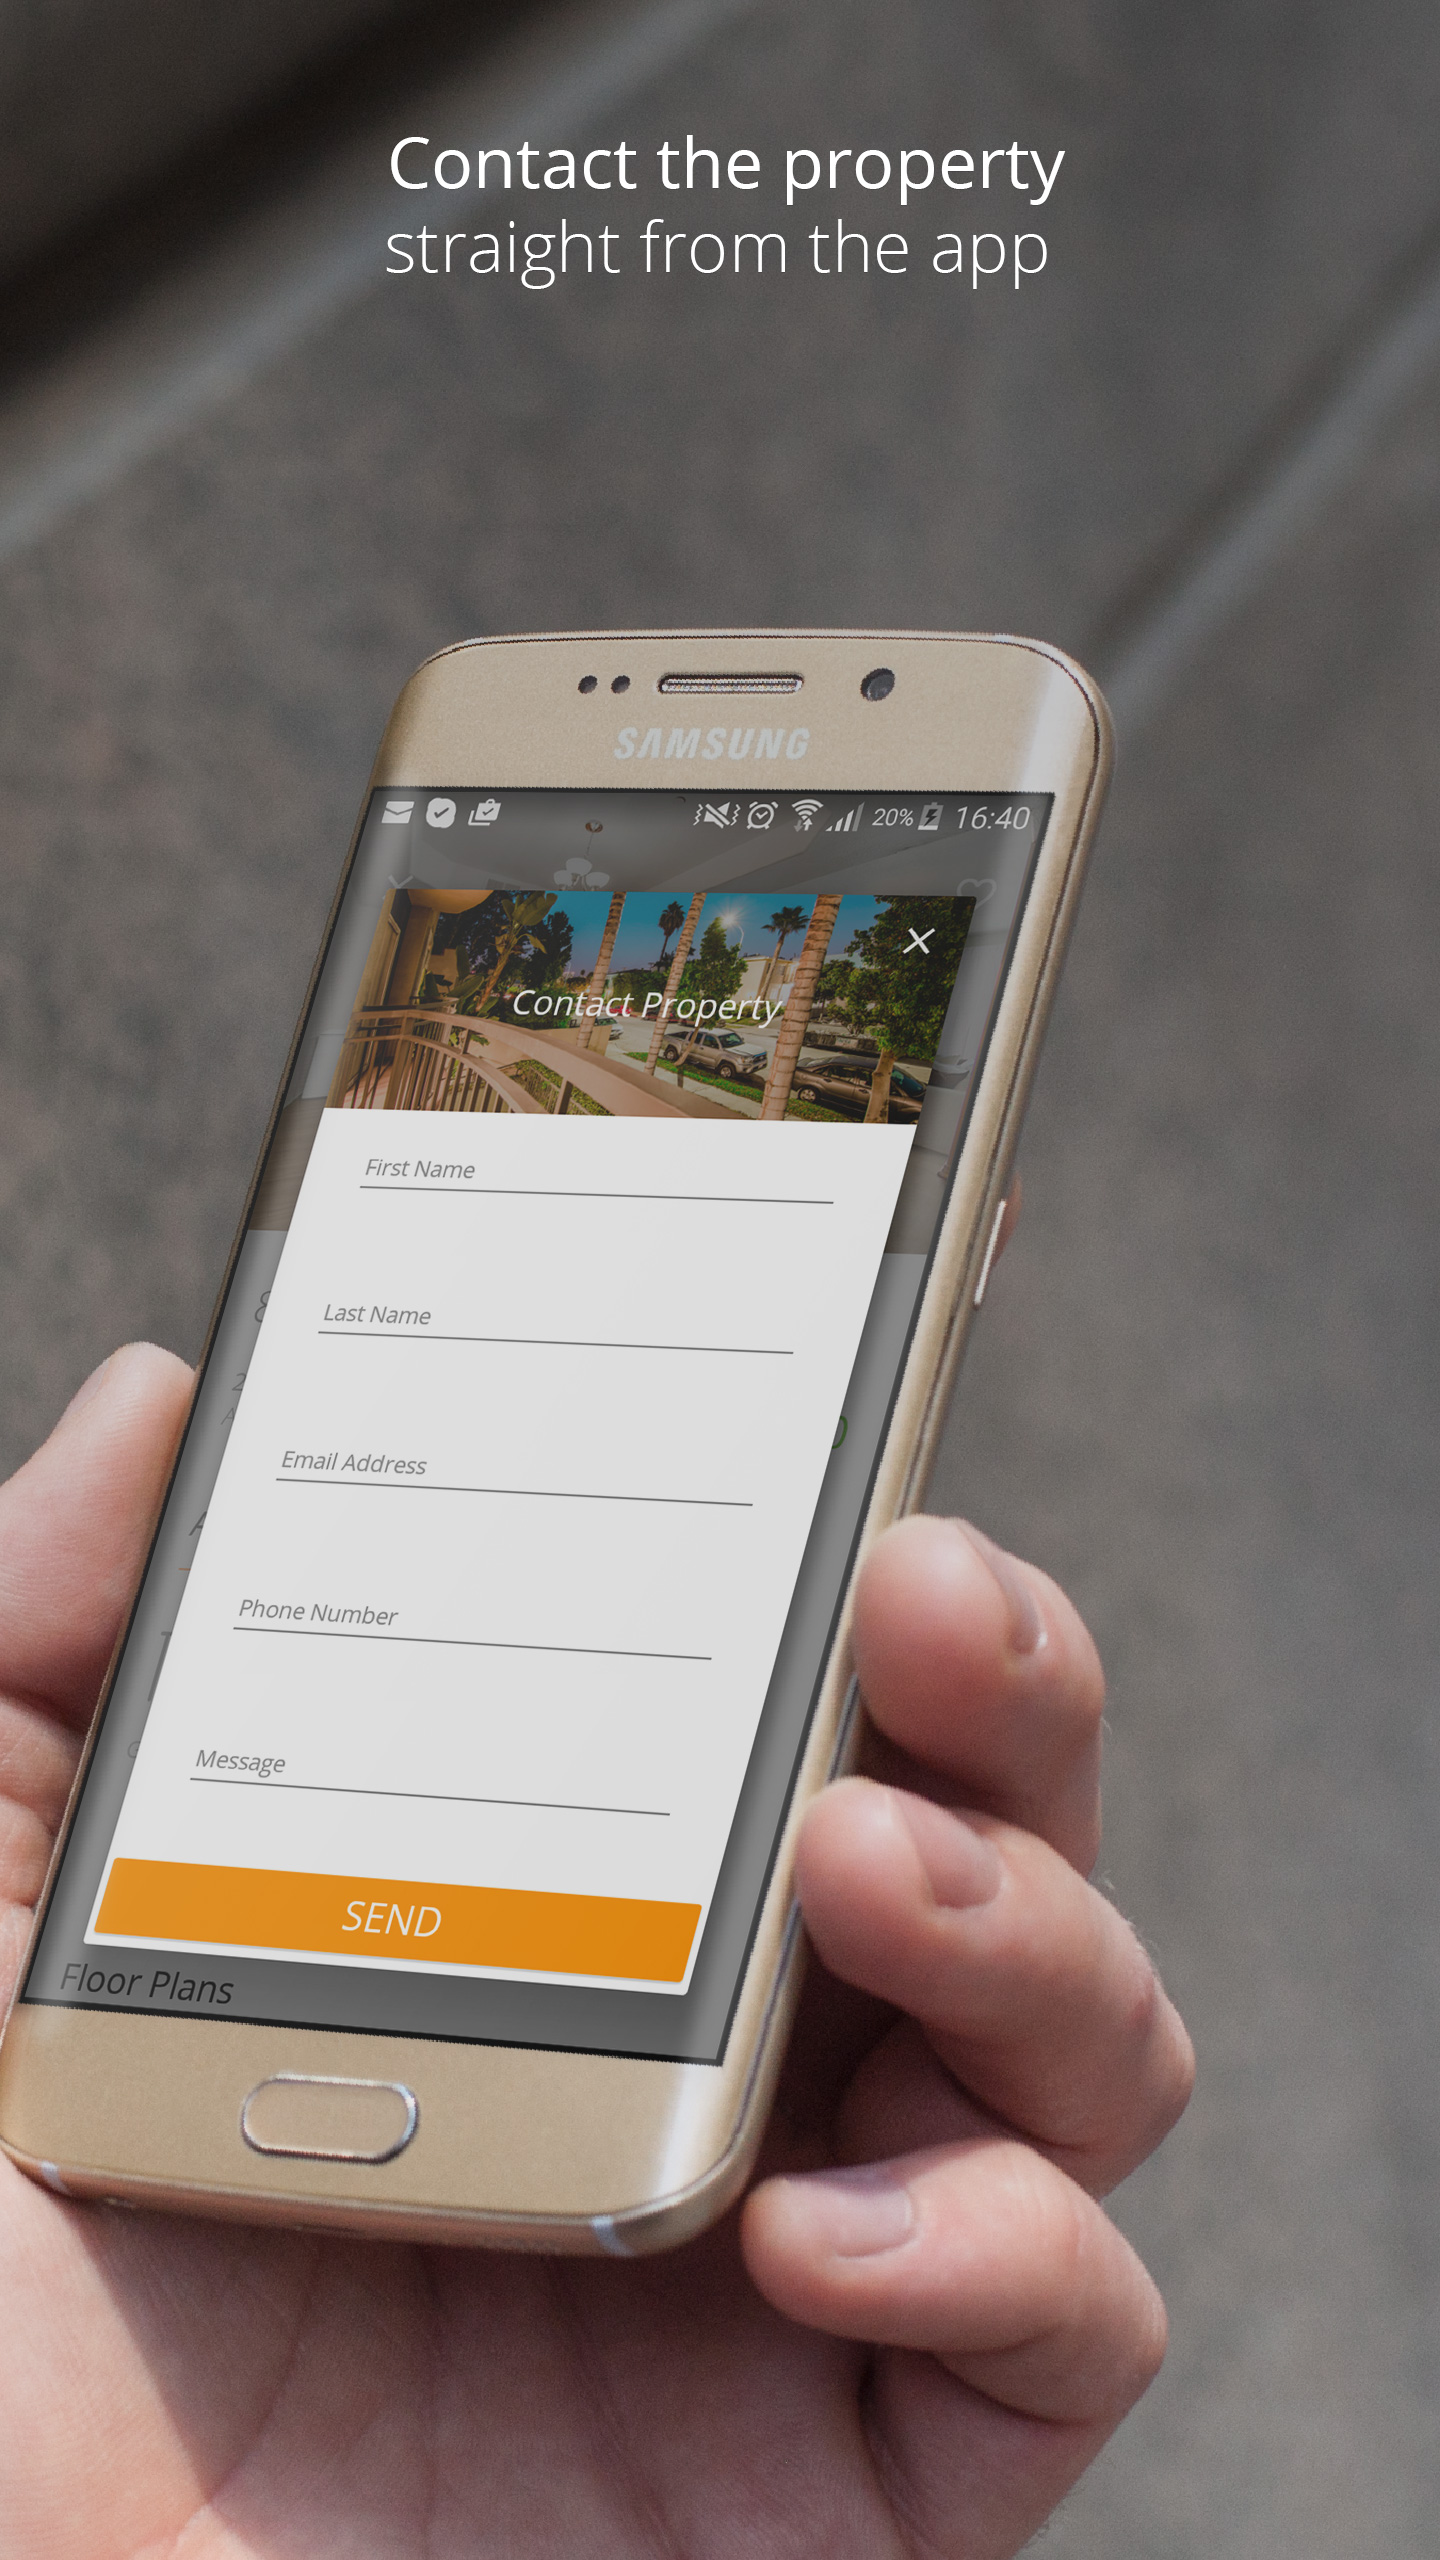 Contact the property straight from the app